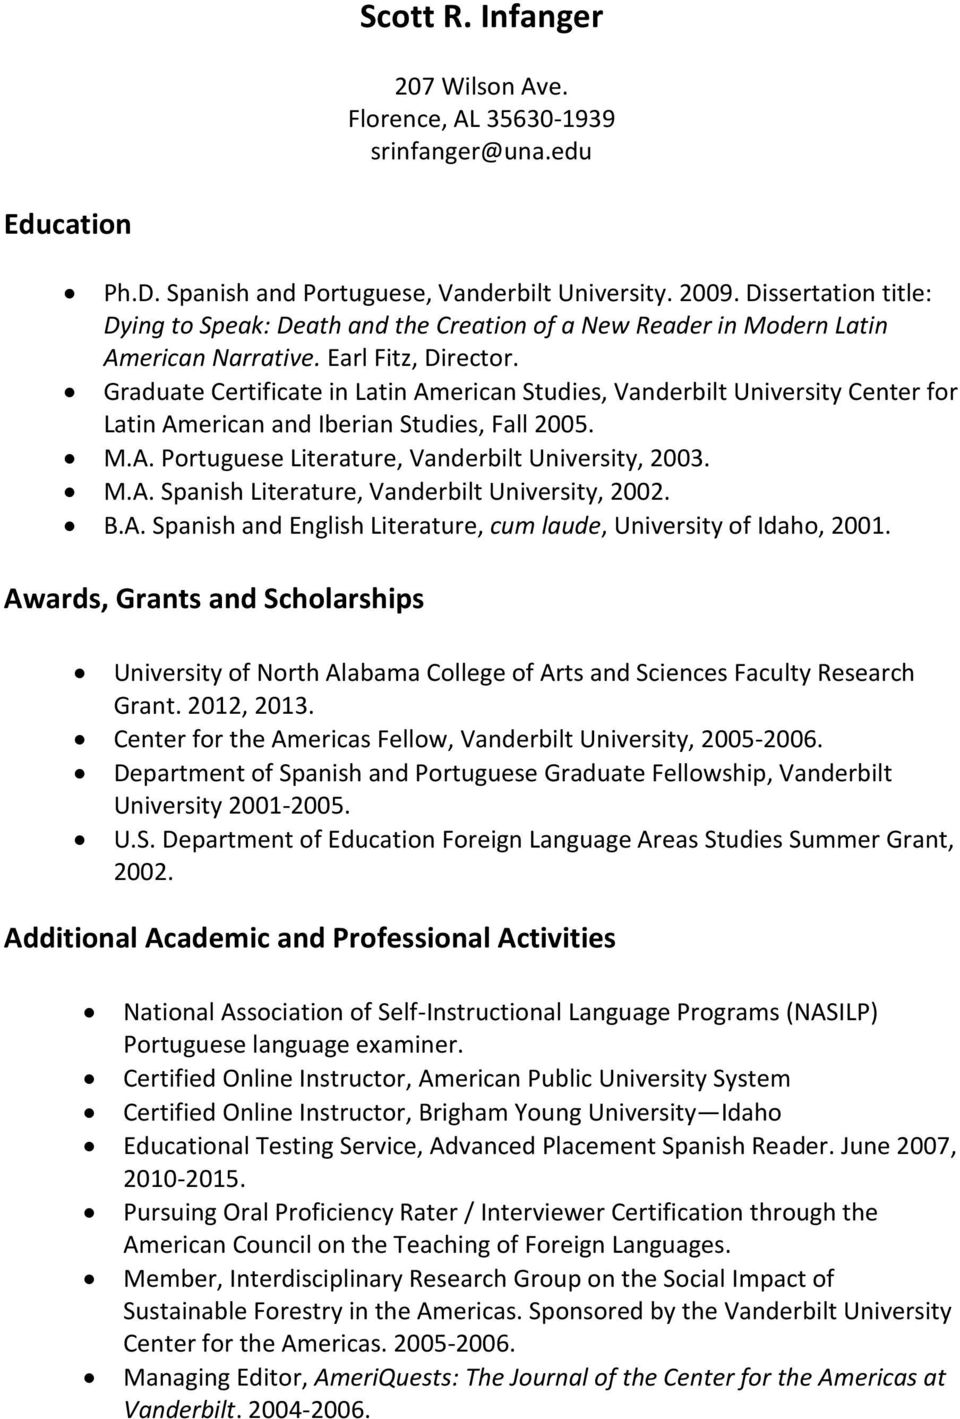 Graduate Certificate in Latin American Studies, Vanderbilt University Center for Latin American and Iberian Studies, Fall 2005. M.A. Portuguese Literature, Vanderbilt University, 2003. M.A. Spanish Literature, Vanderbilt University, 2002.